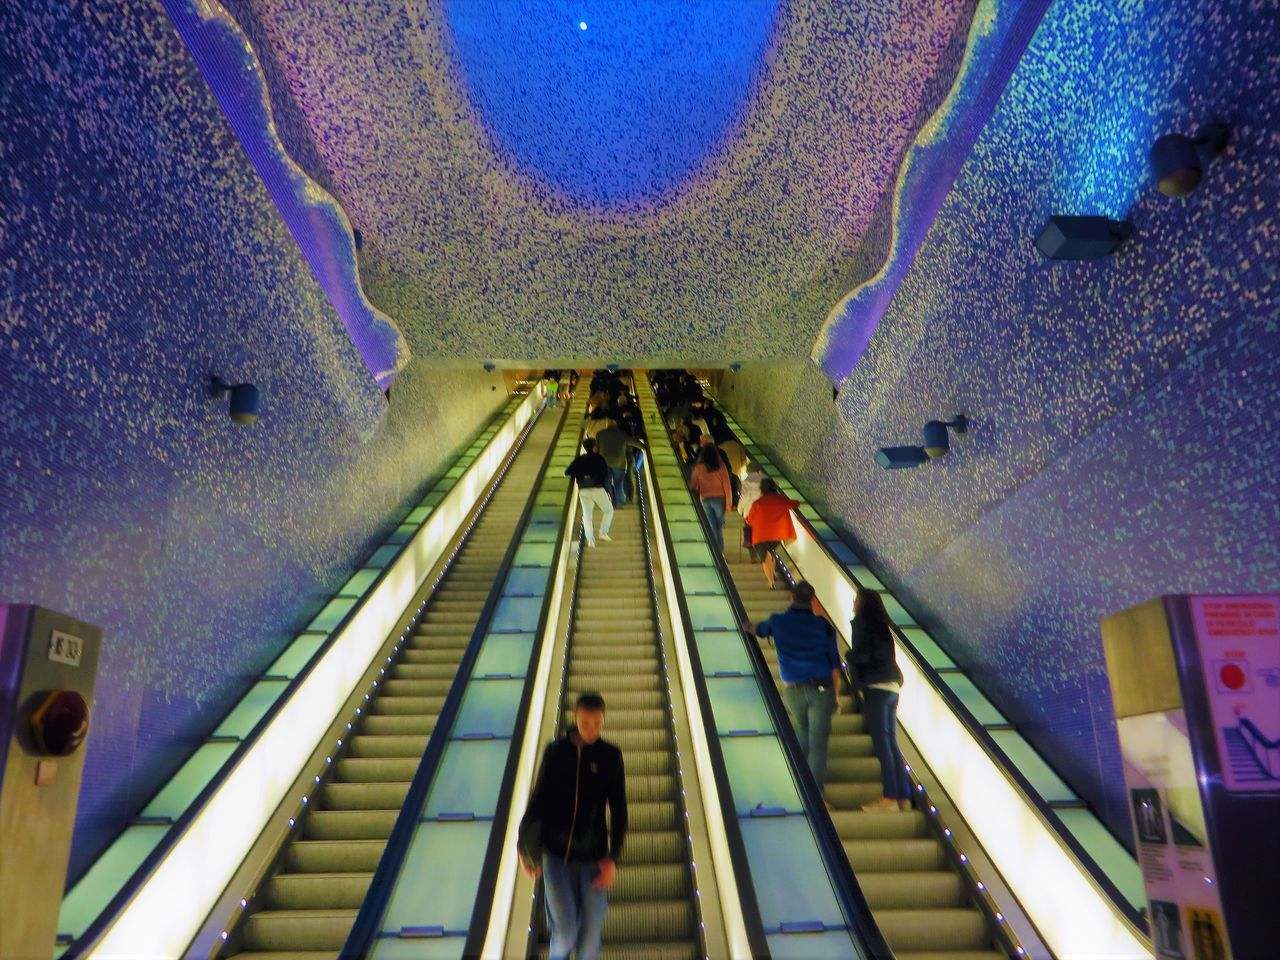 Adult Architecture Convenience Day High Angle View Illuminated Indoors  Large Group Of People Leisure Activity Lifestyles Men Metro Station Modern People Real People Steps Steps And Staircases Subway Station Technology Toledo Metro Staton Napoli Women